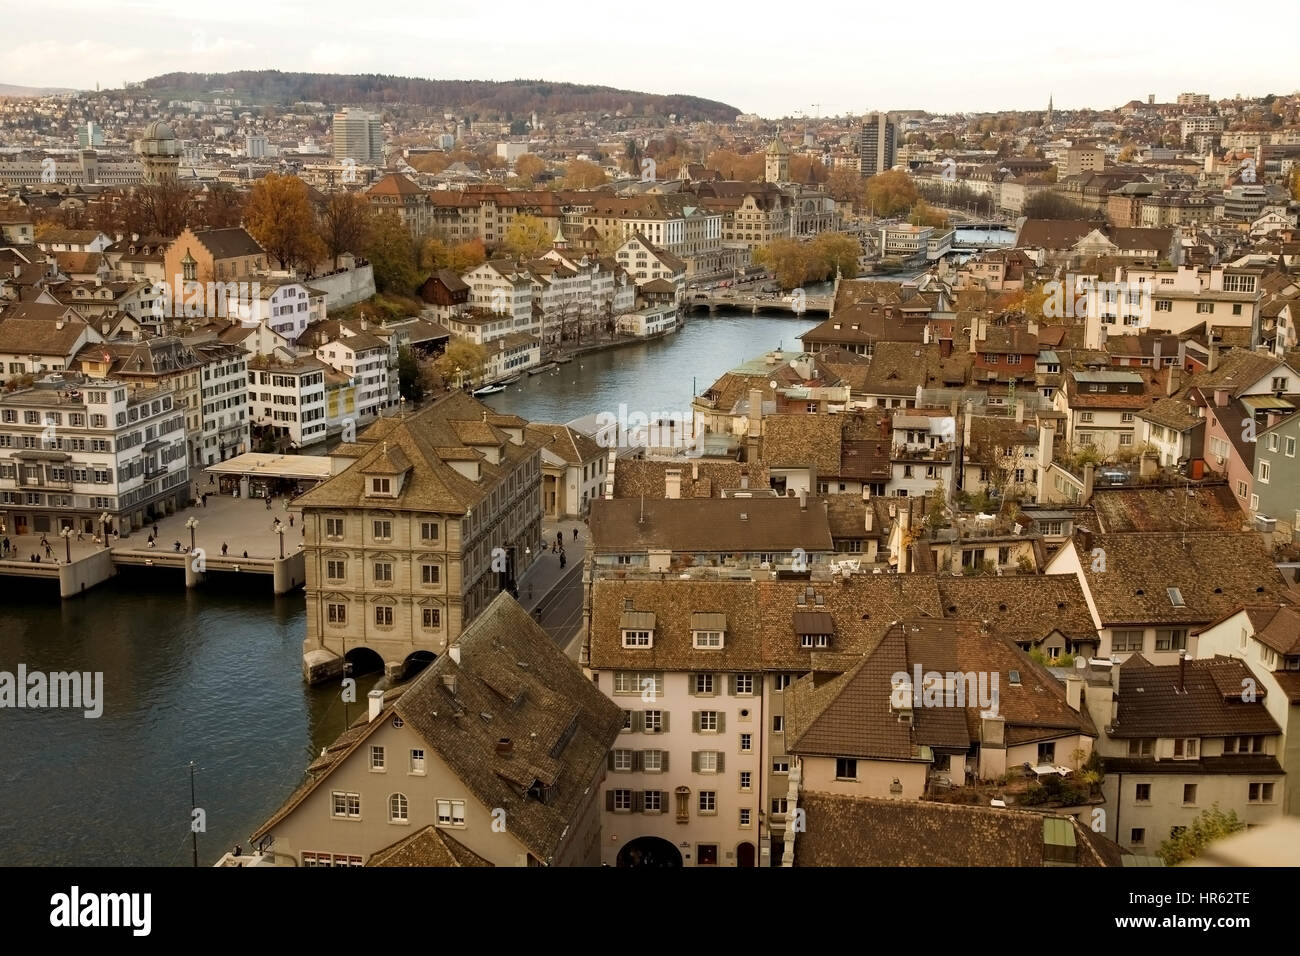 zurich skyline - river view - aged colours - Stock Image